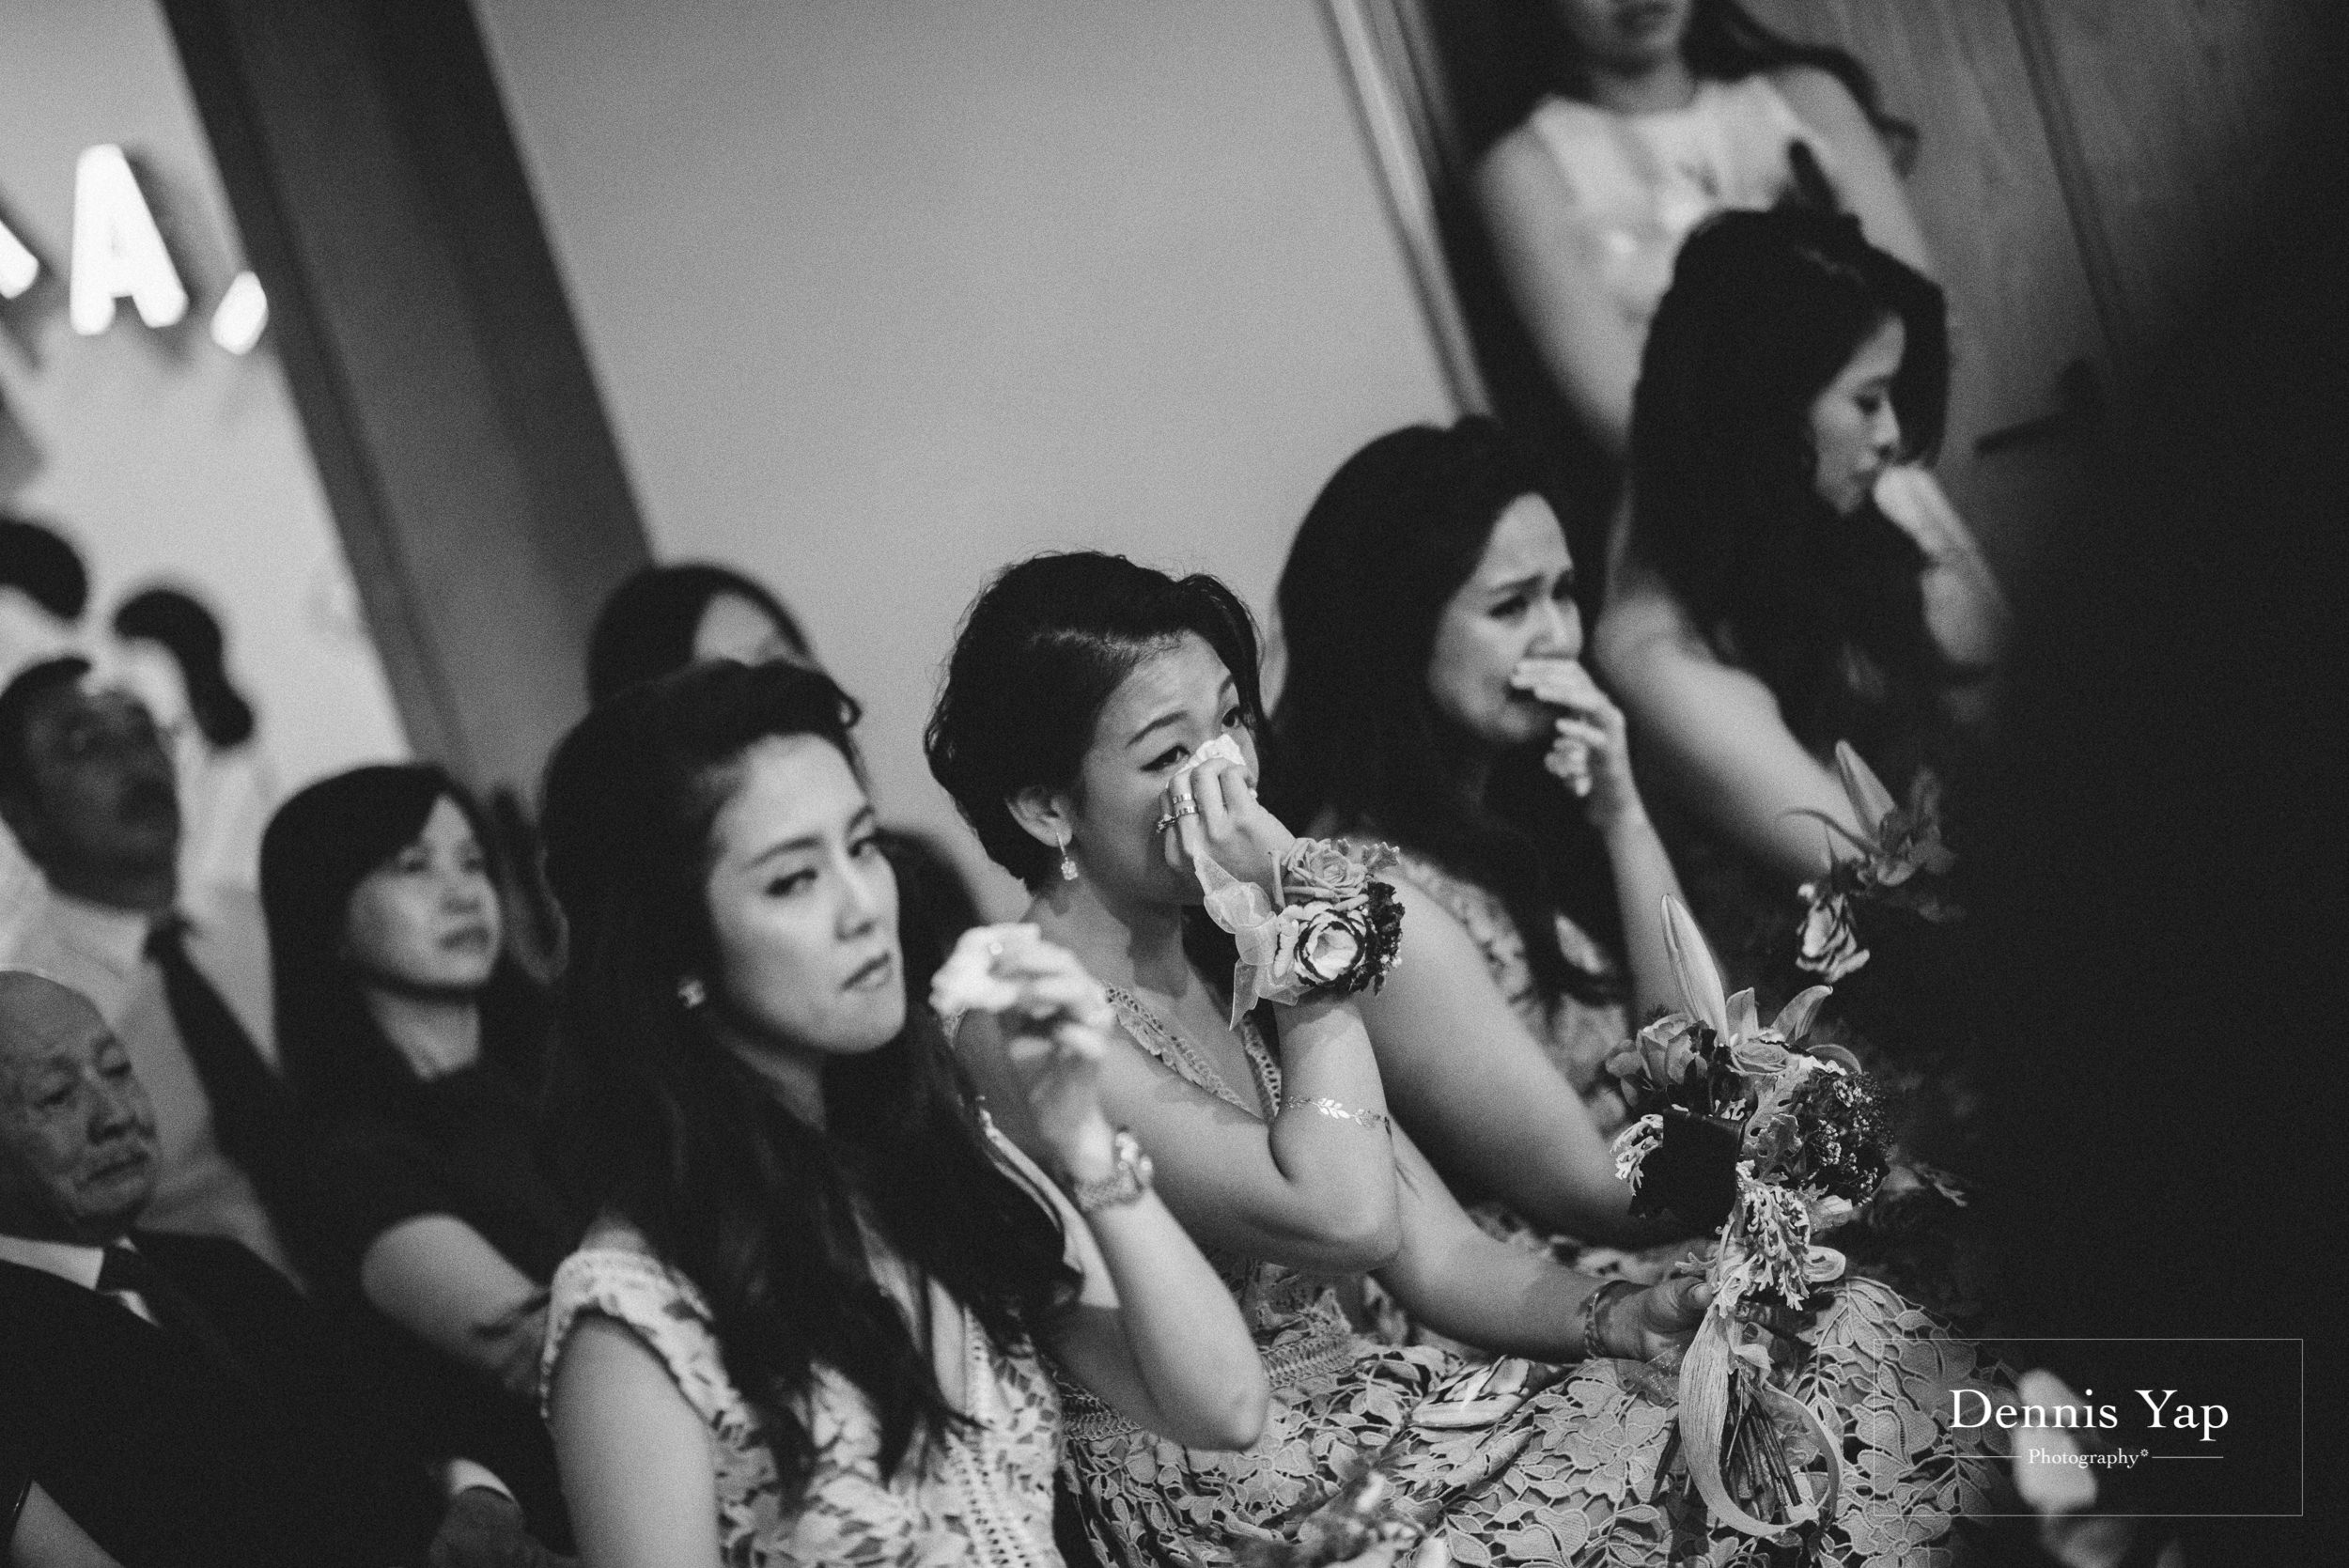 ser siang sze liang rom registration of marriage KL journal hotel dennis yap photography-13.jpg